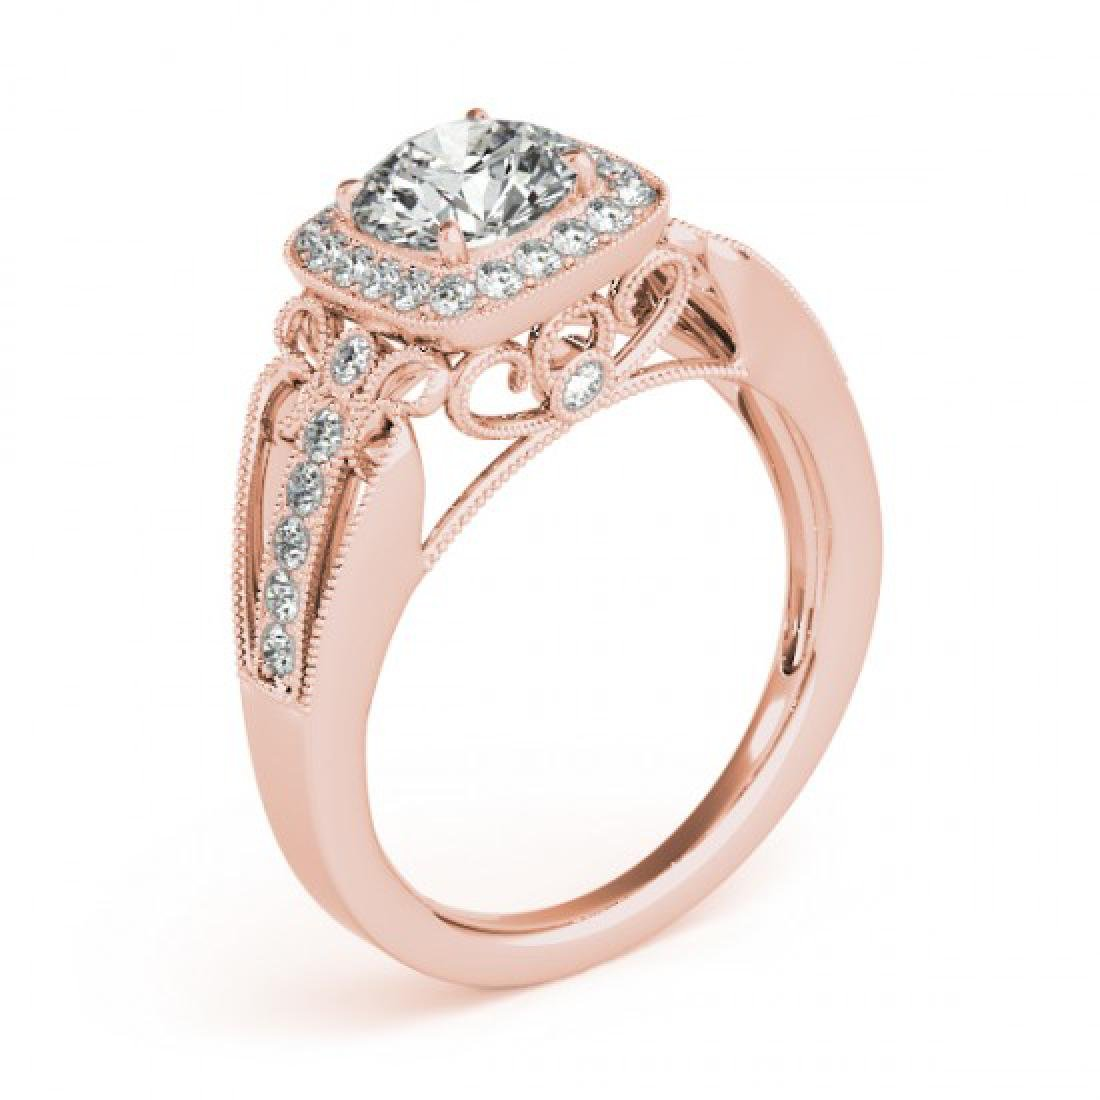 1.3 CTW Certified VS/SI Diamond Solitaire Halo Ring 14K - 3